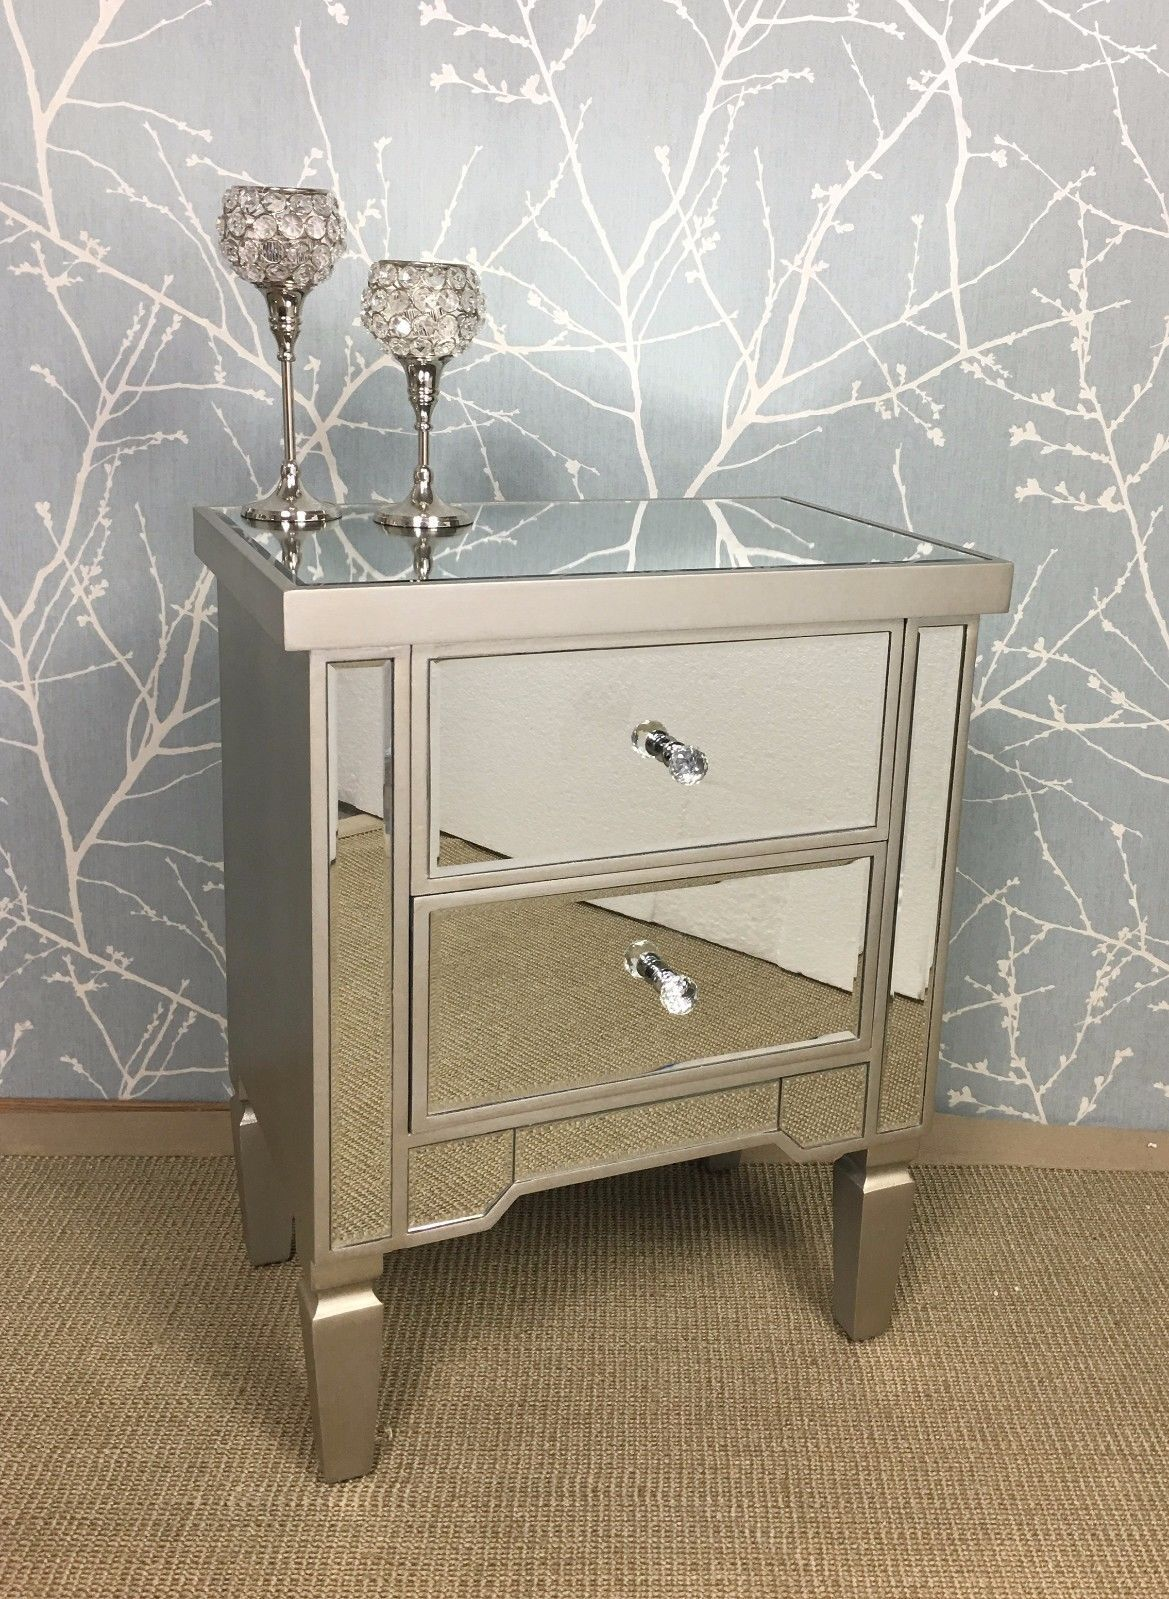 Mirrored Bedside Table With Drawers: Details About Georgia Luxe Champagne Gold Mirrored 2